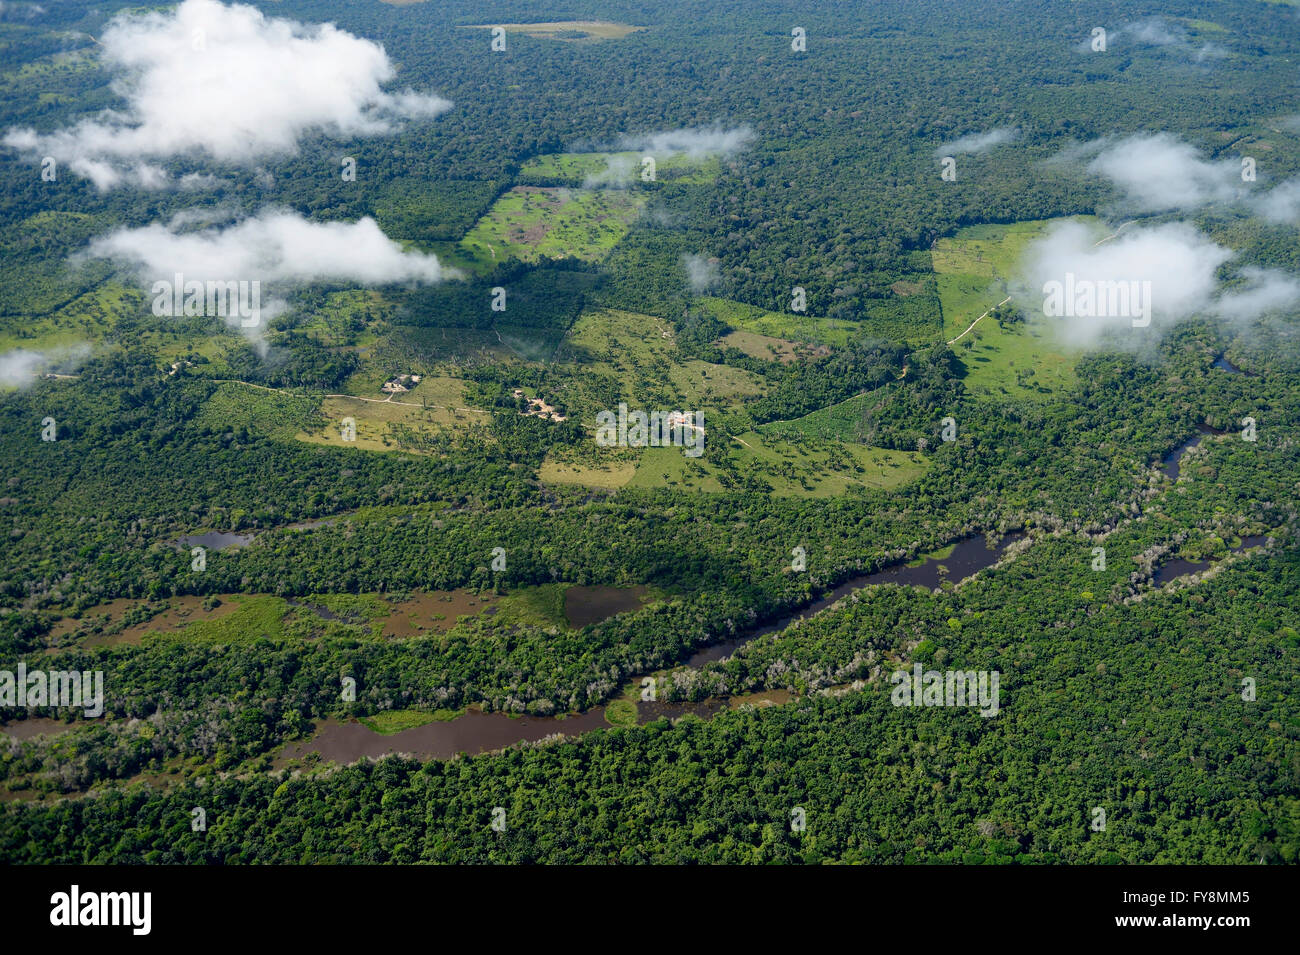 Brazil, Para, Itaituba, Amazon rainforest, slash and burn, reclamation of pastureland - Stock Image